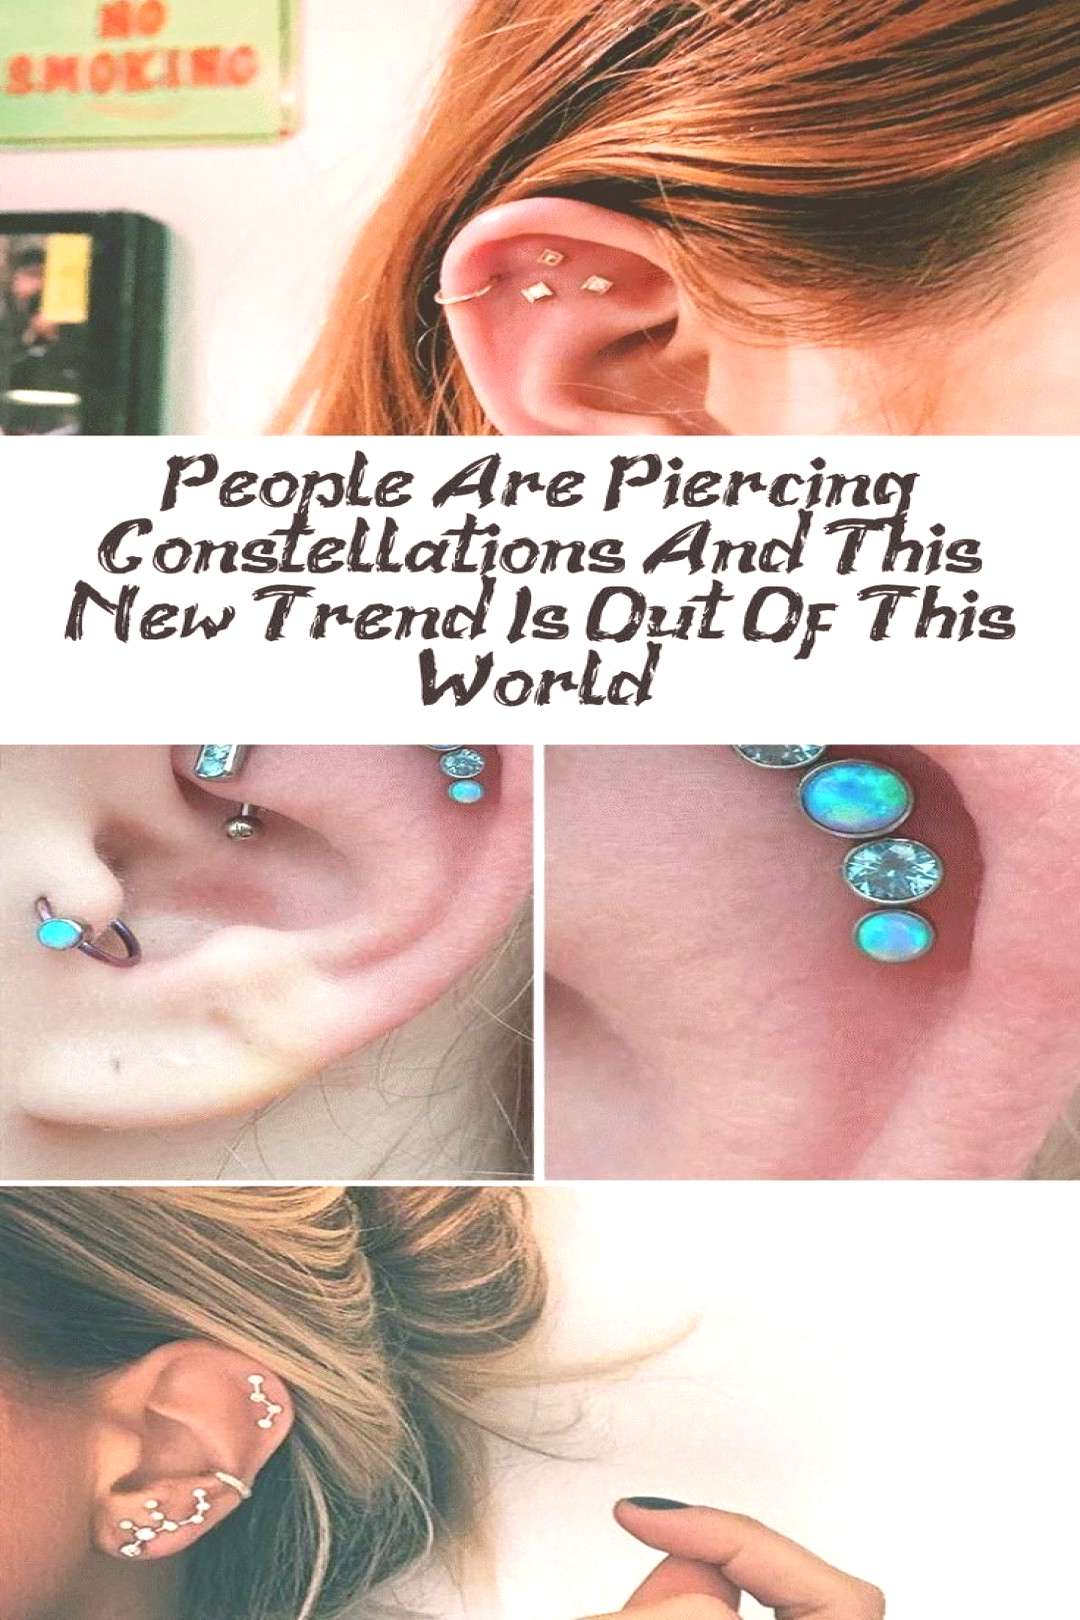 People Are Piercing Constellations And This New Trend Is Out Of This World - Piercing | DcHou